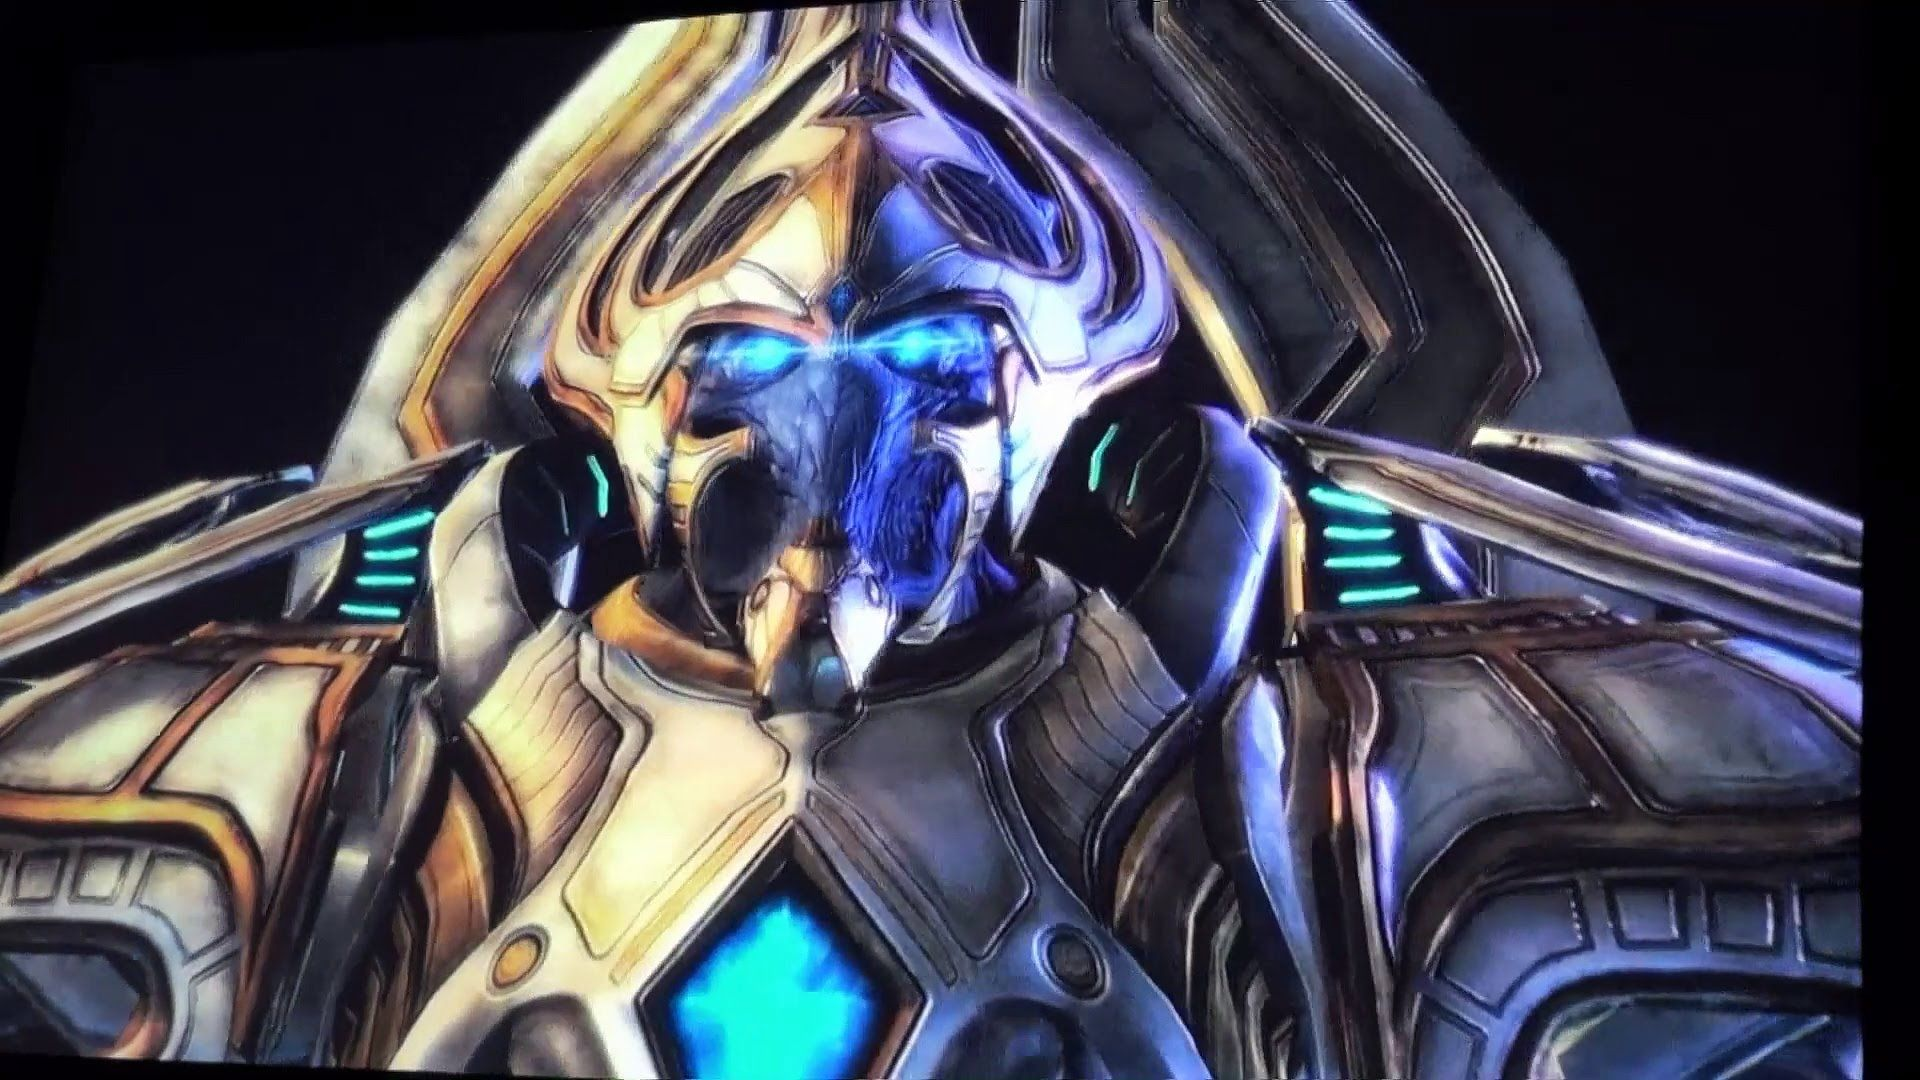 Heroes Of The Storm Artanis Untouchable Xul Patch March 2016 Best Build Moba With unrivalled lane clear thanks to his ability to summon skeletons and cleave minions. pinterest